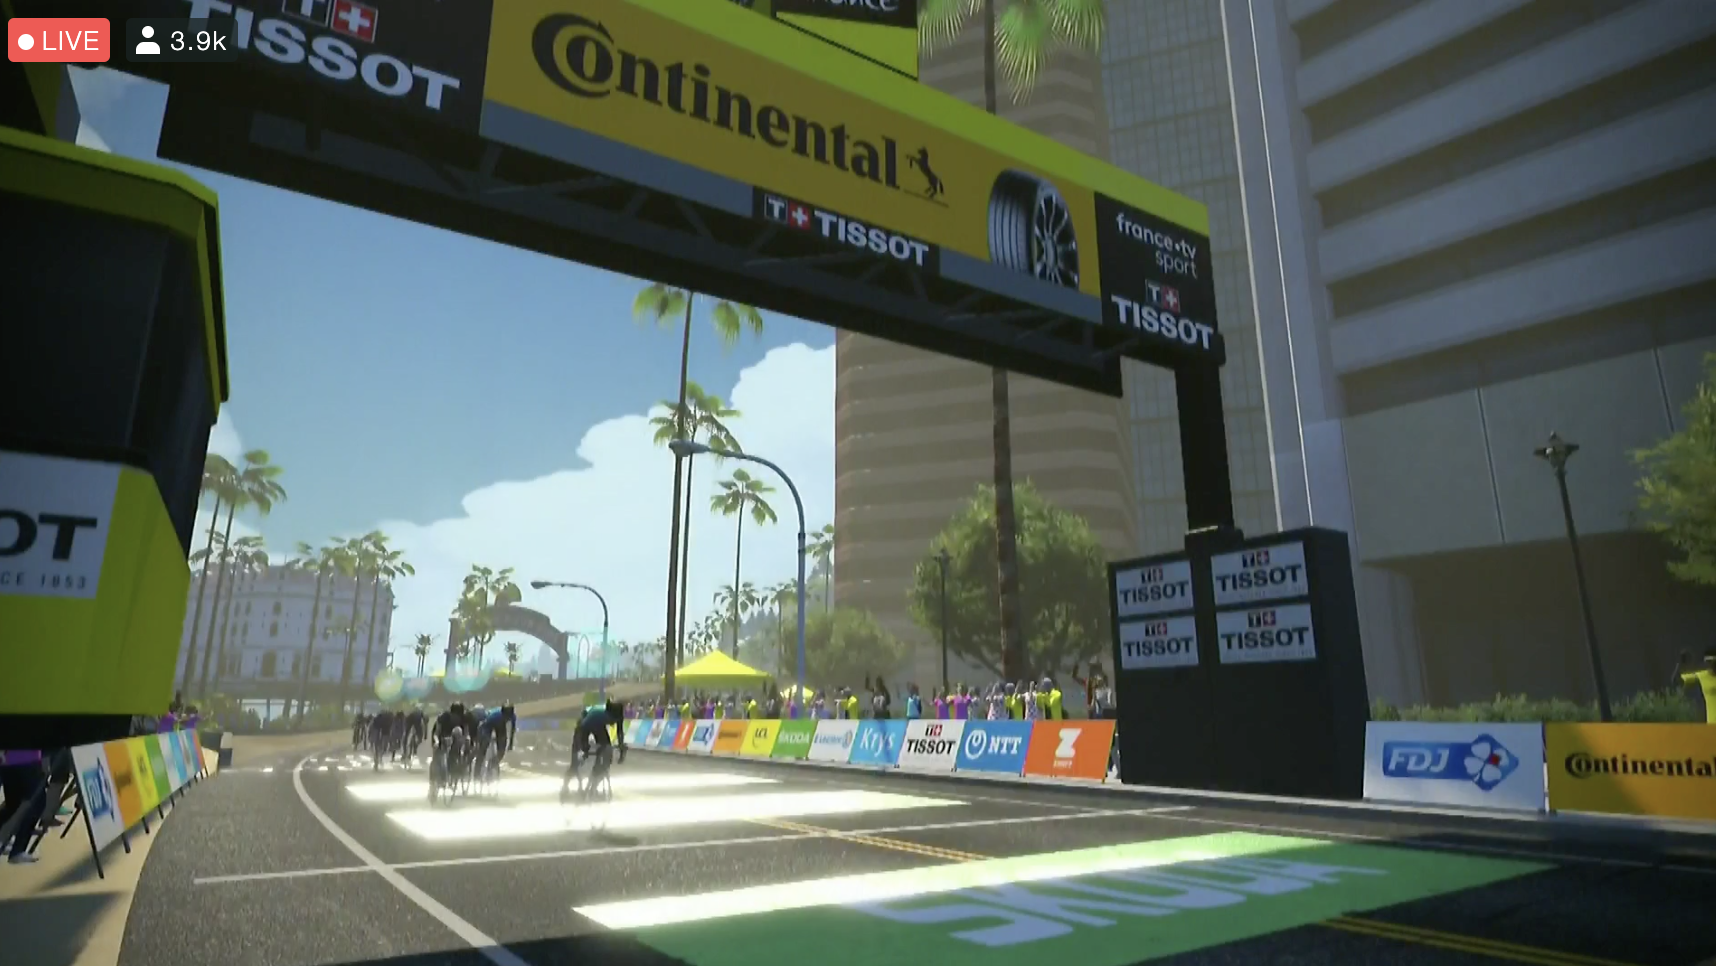 The finish of the stage 1 virtual Tour de France women